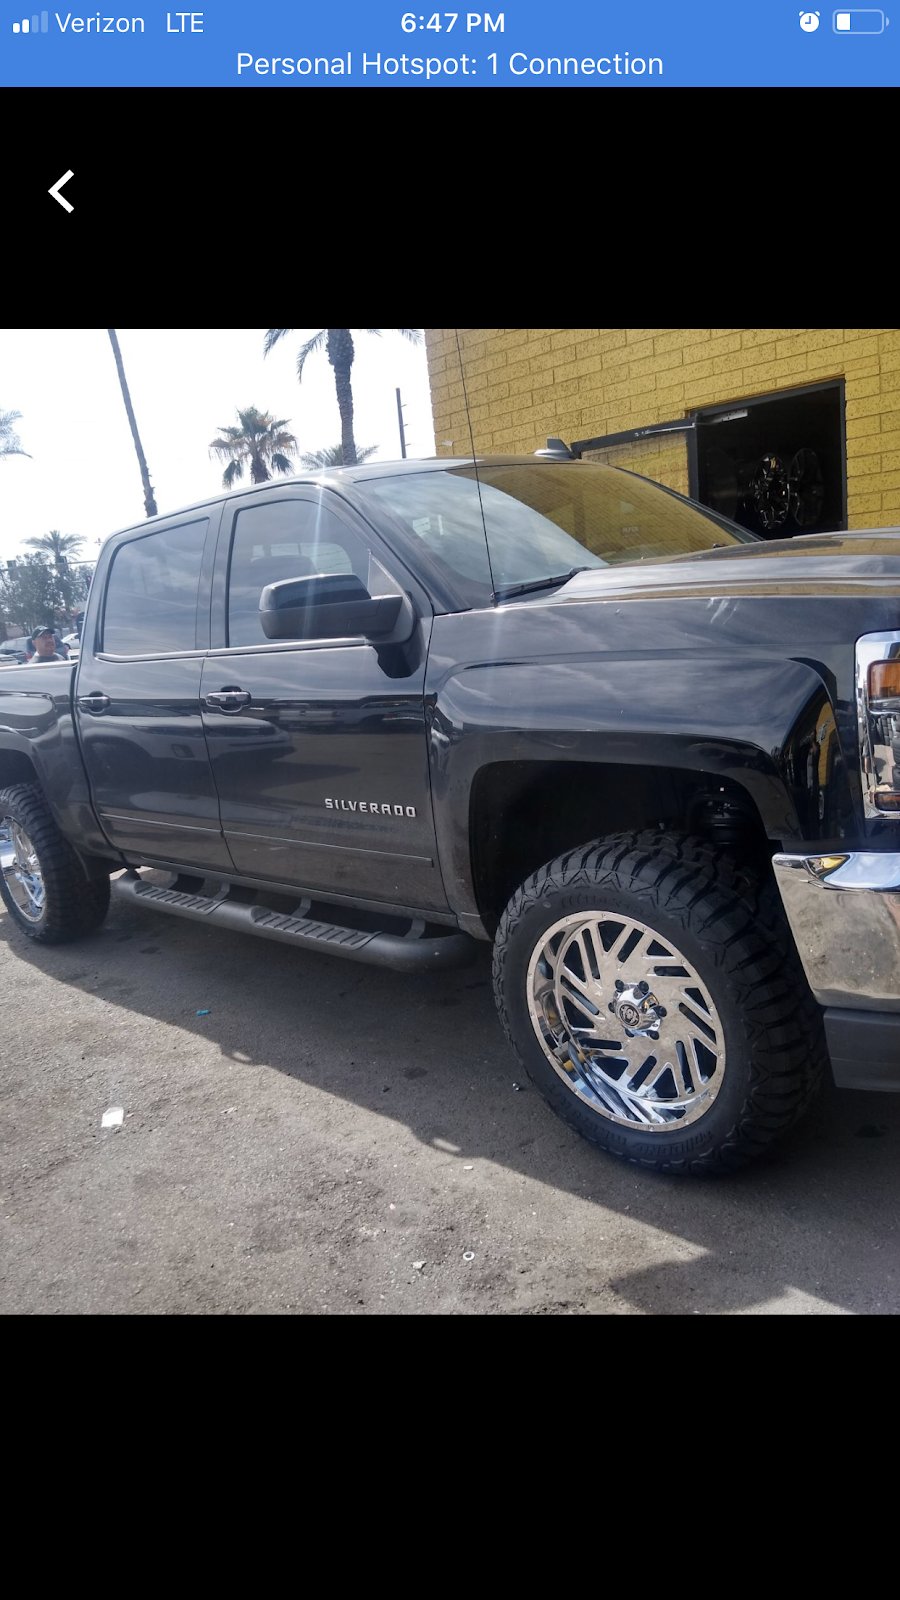 Llantera el chaka - car repair  | Photo 6 of 10 | Address: 5525 N 59th Ave, Glendale, AZ 85301, USA | Phone: (602) 825-8509